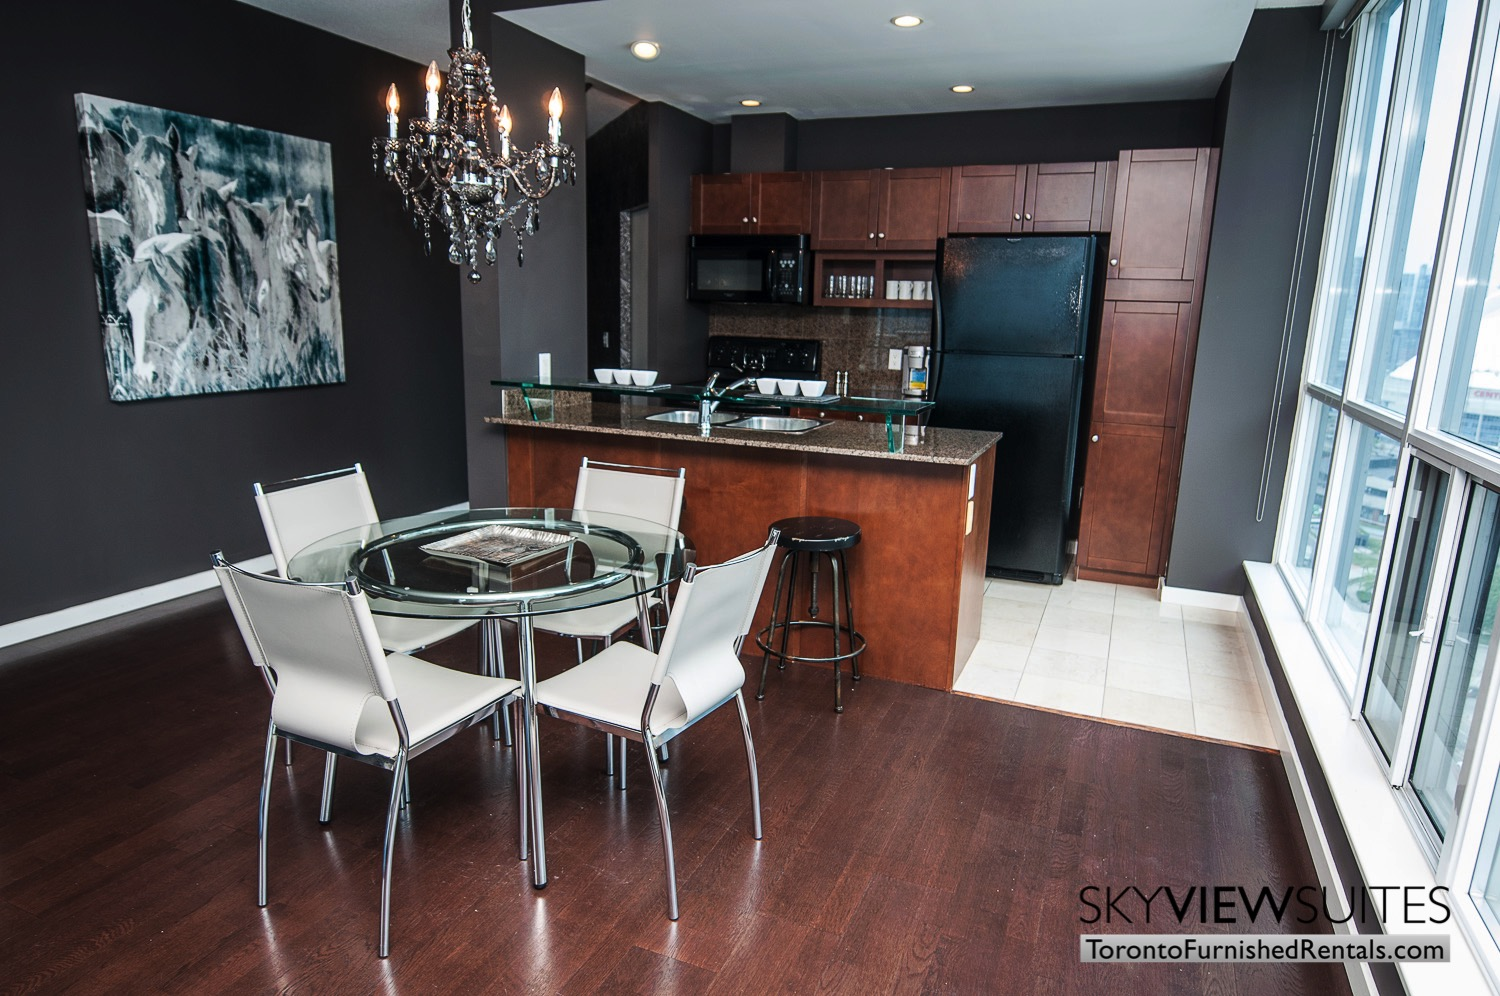 furnished-apartment- ktichen-waterfrontfurnished-apartment- ktichen-waterfrontfurnished-apartment- kitchen-waterfront